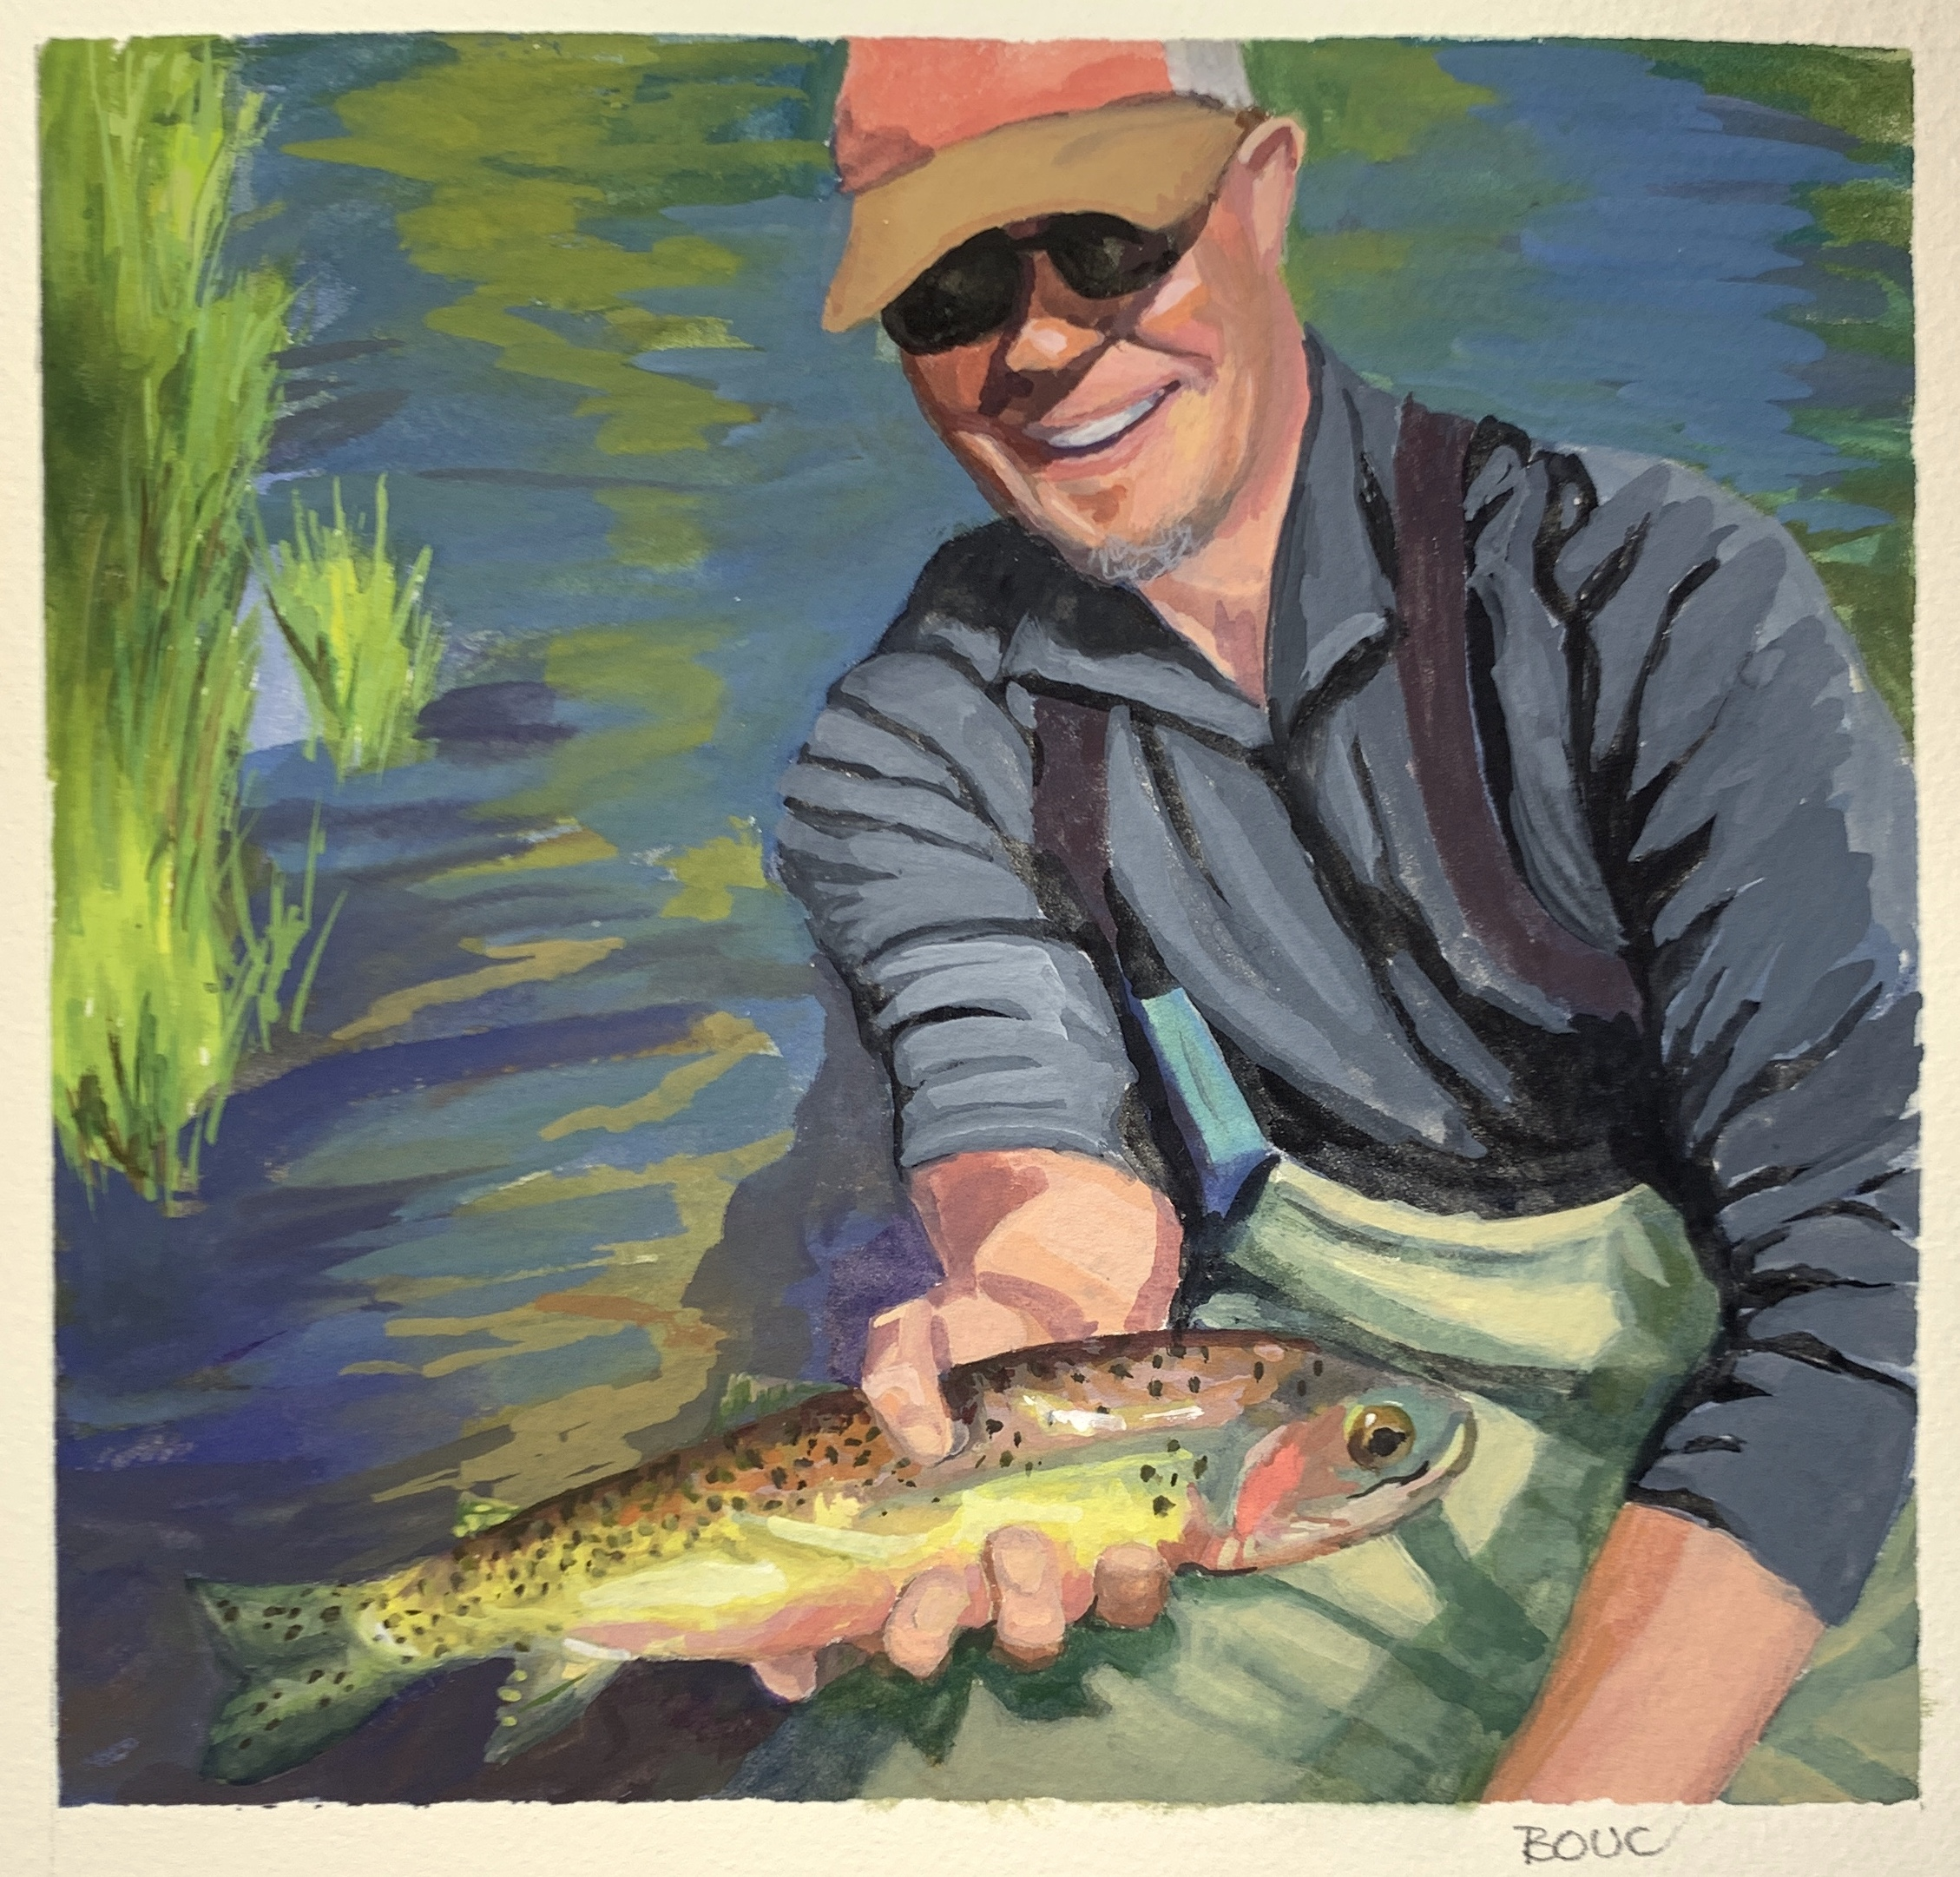 "Guy with Big Fish: People Facebook Thinks I Should Know #6"" Gouache, 8x8 inches"